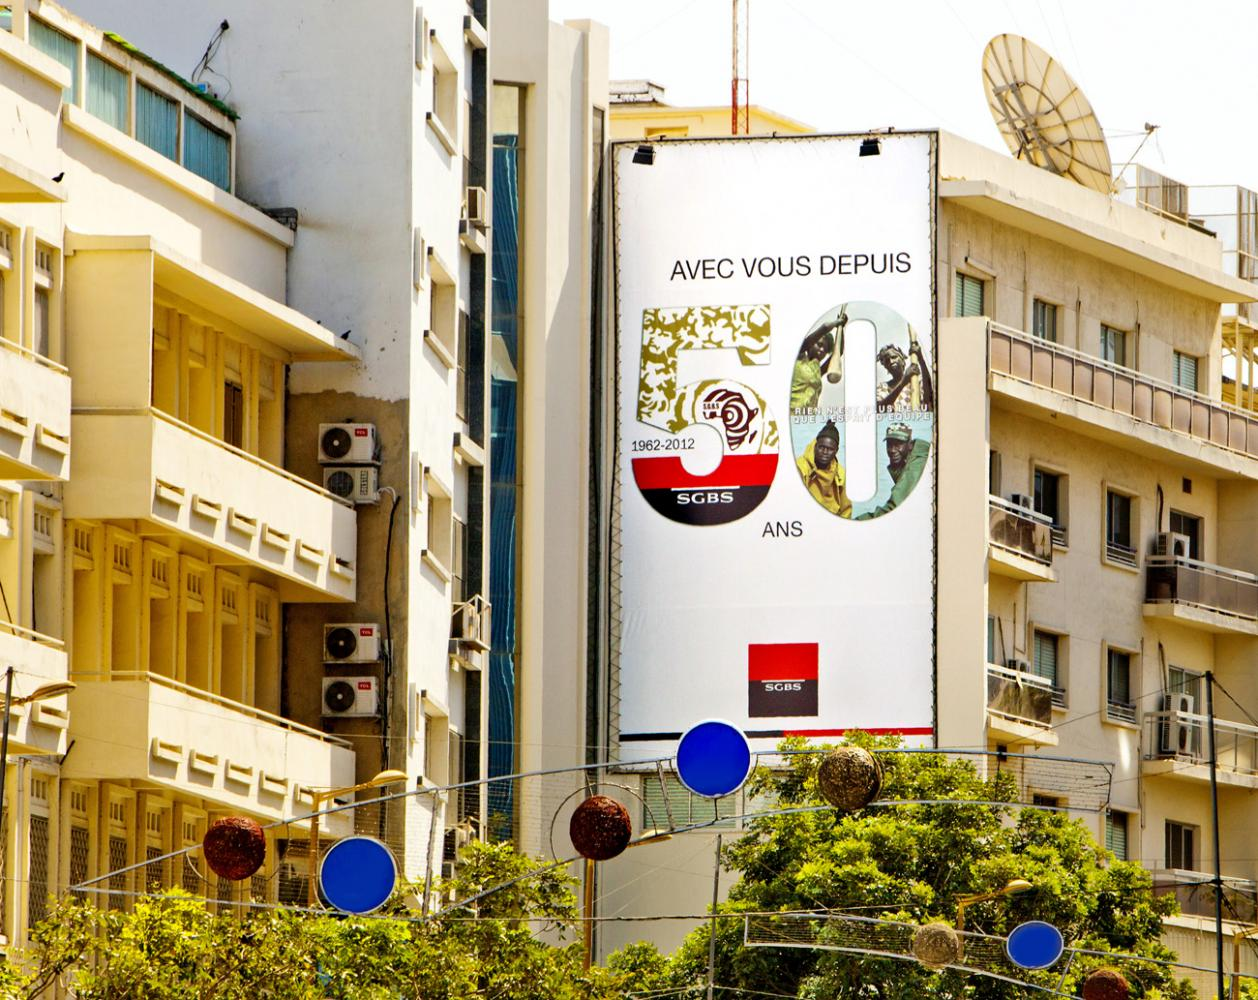 50 years anniversary communication campaign for Societe Generale bank in Senegal